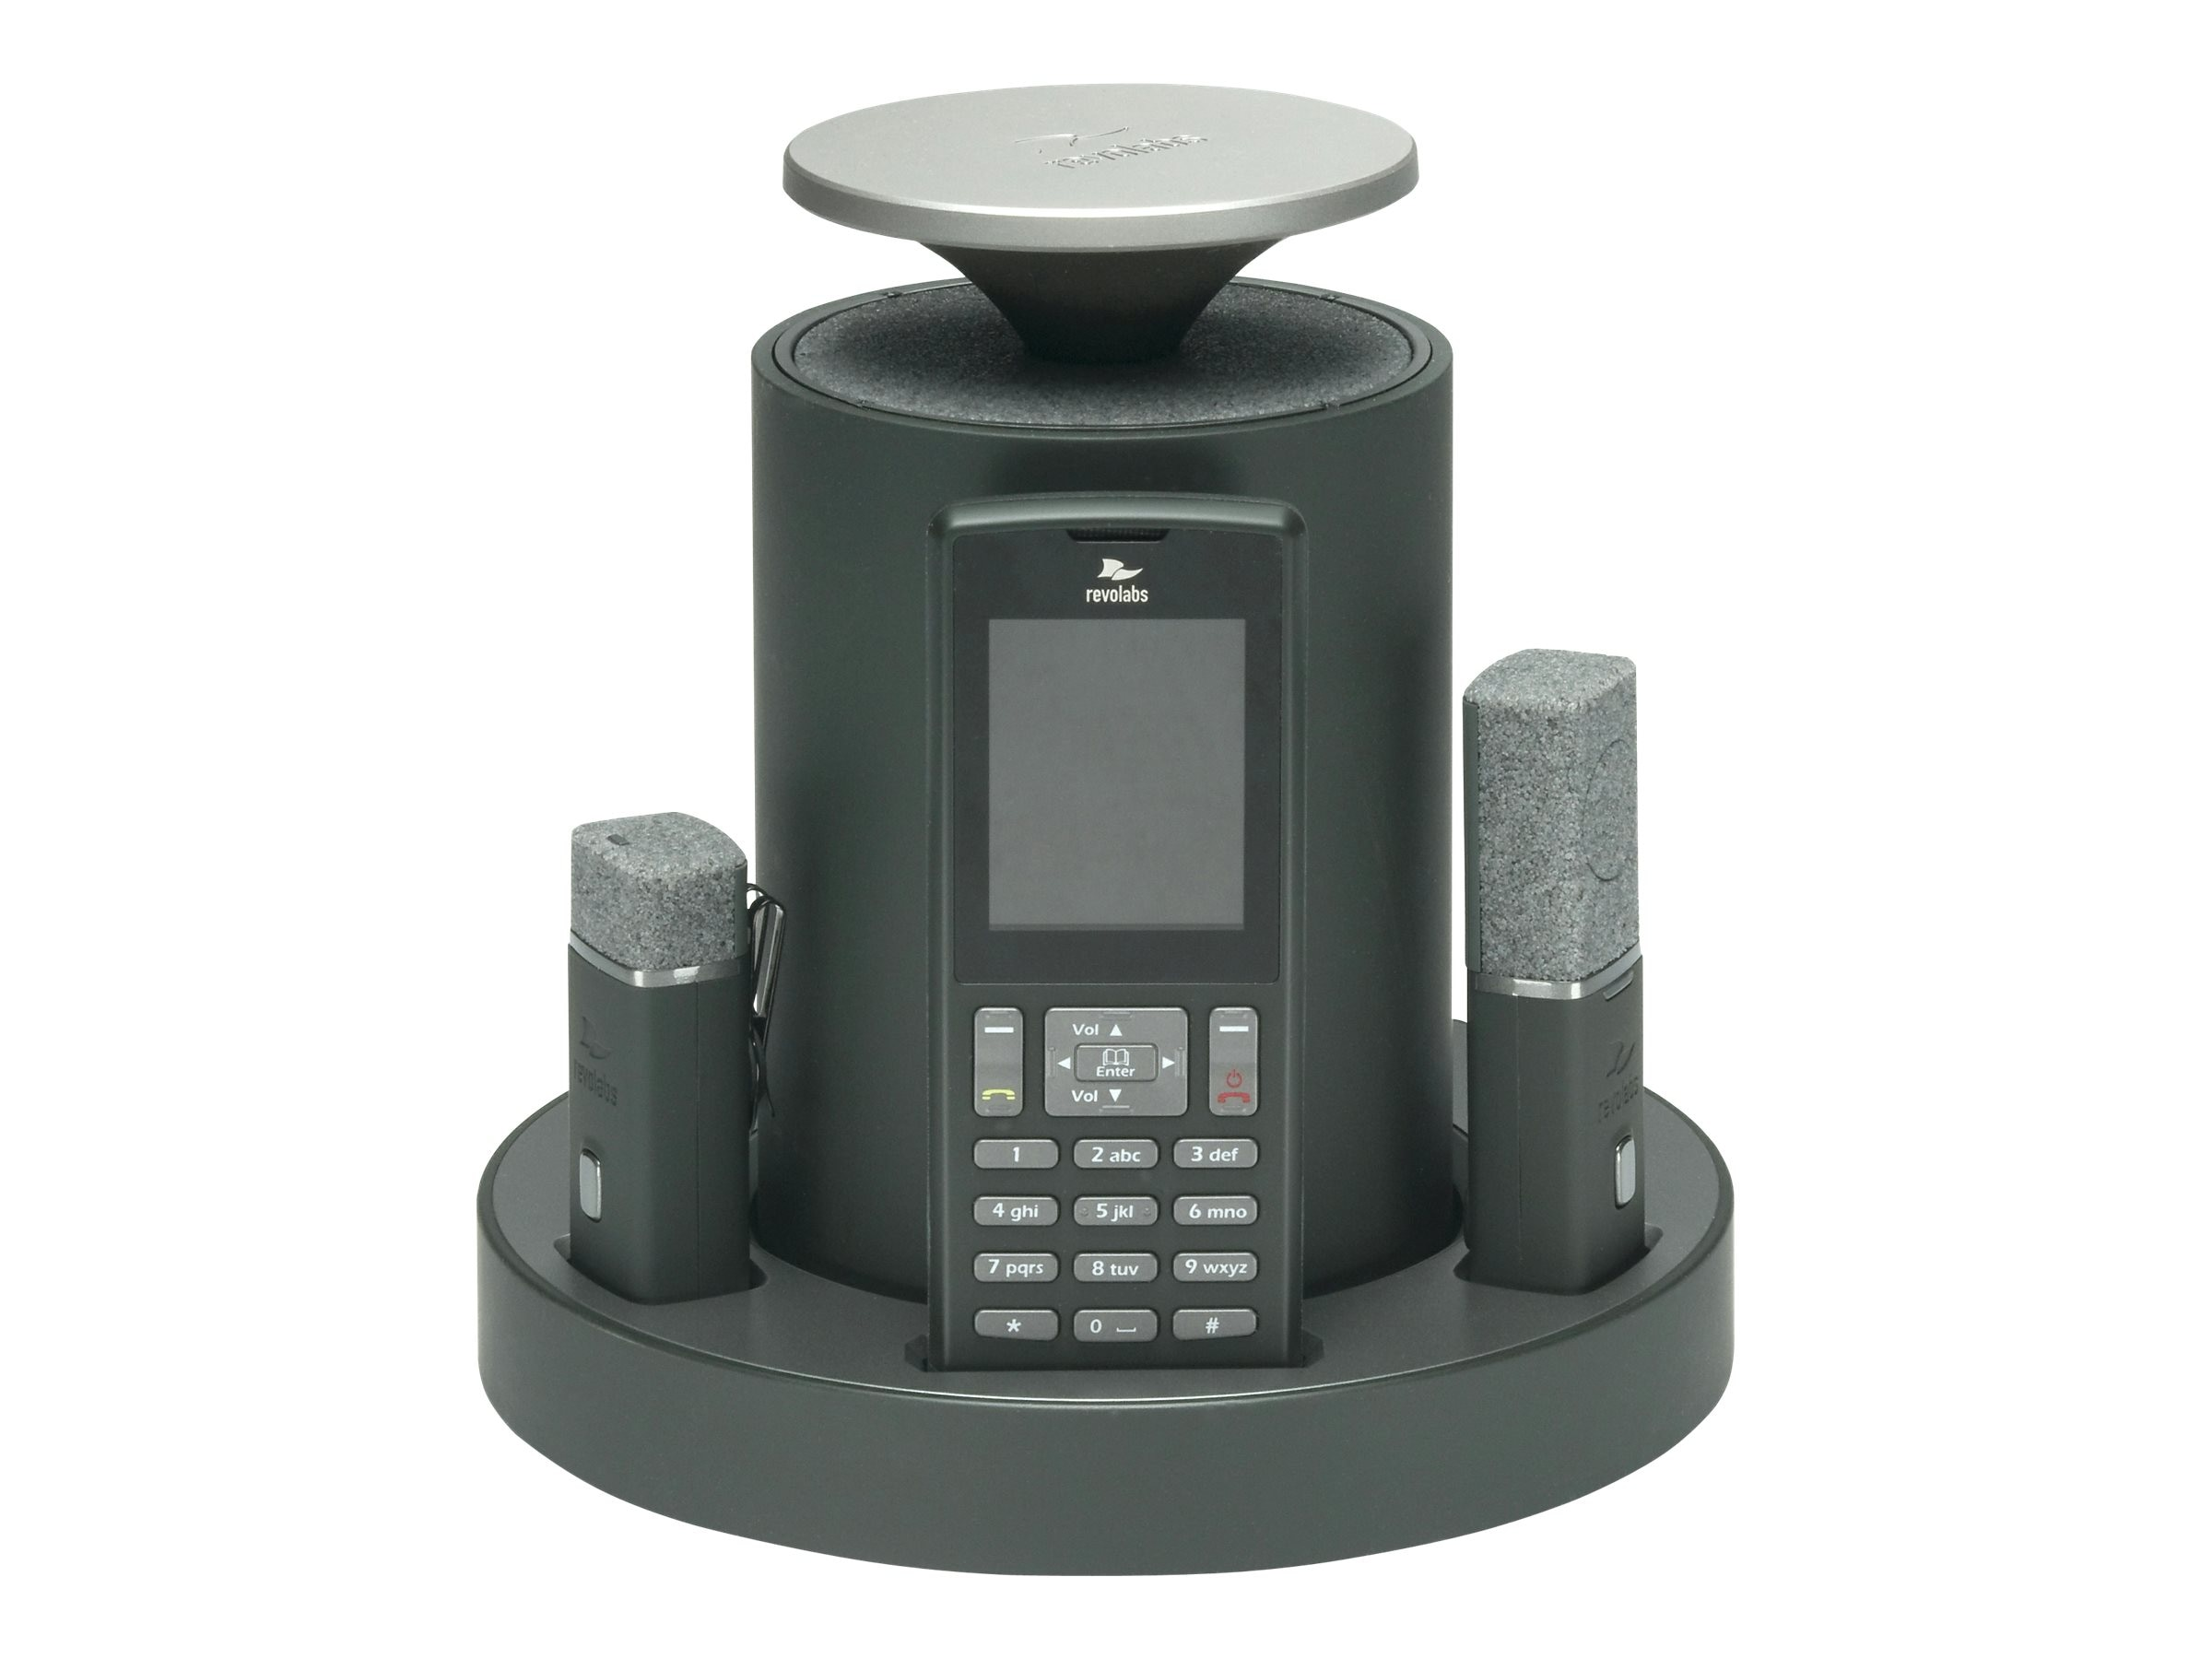 Revolabs FLX2 Wireless Conference Phone System with 1 Omni & 1 Wearable Microphone, 10-FLX2-101-POTS